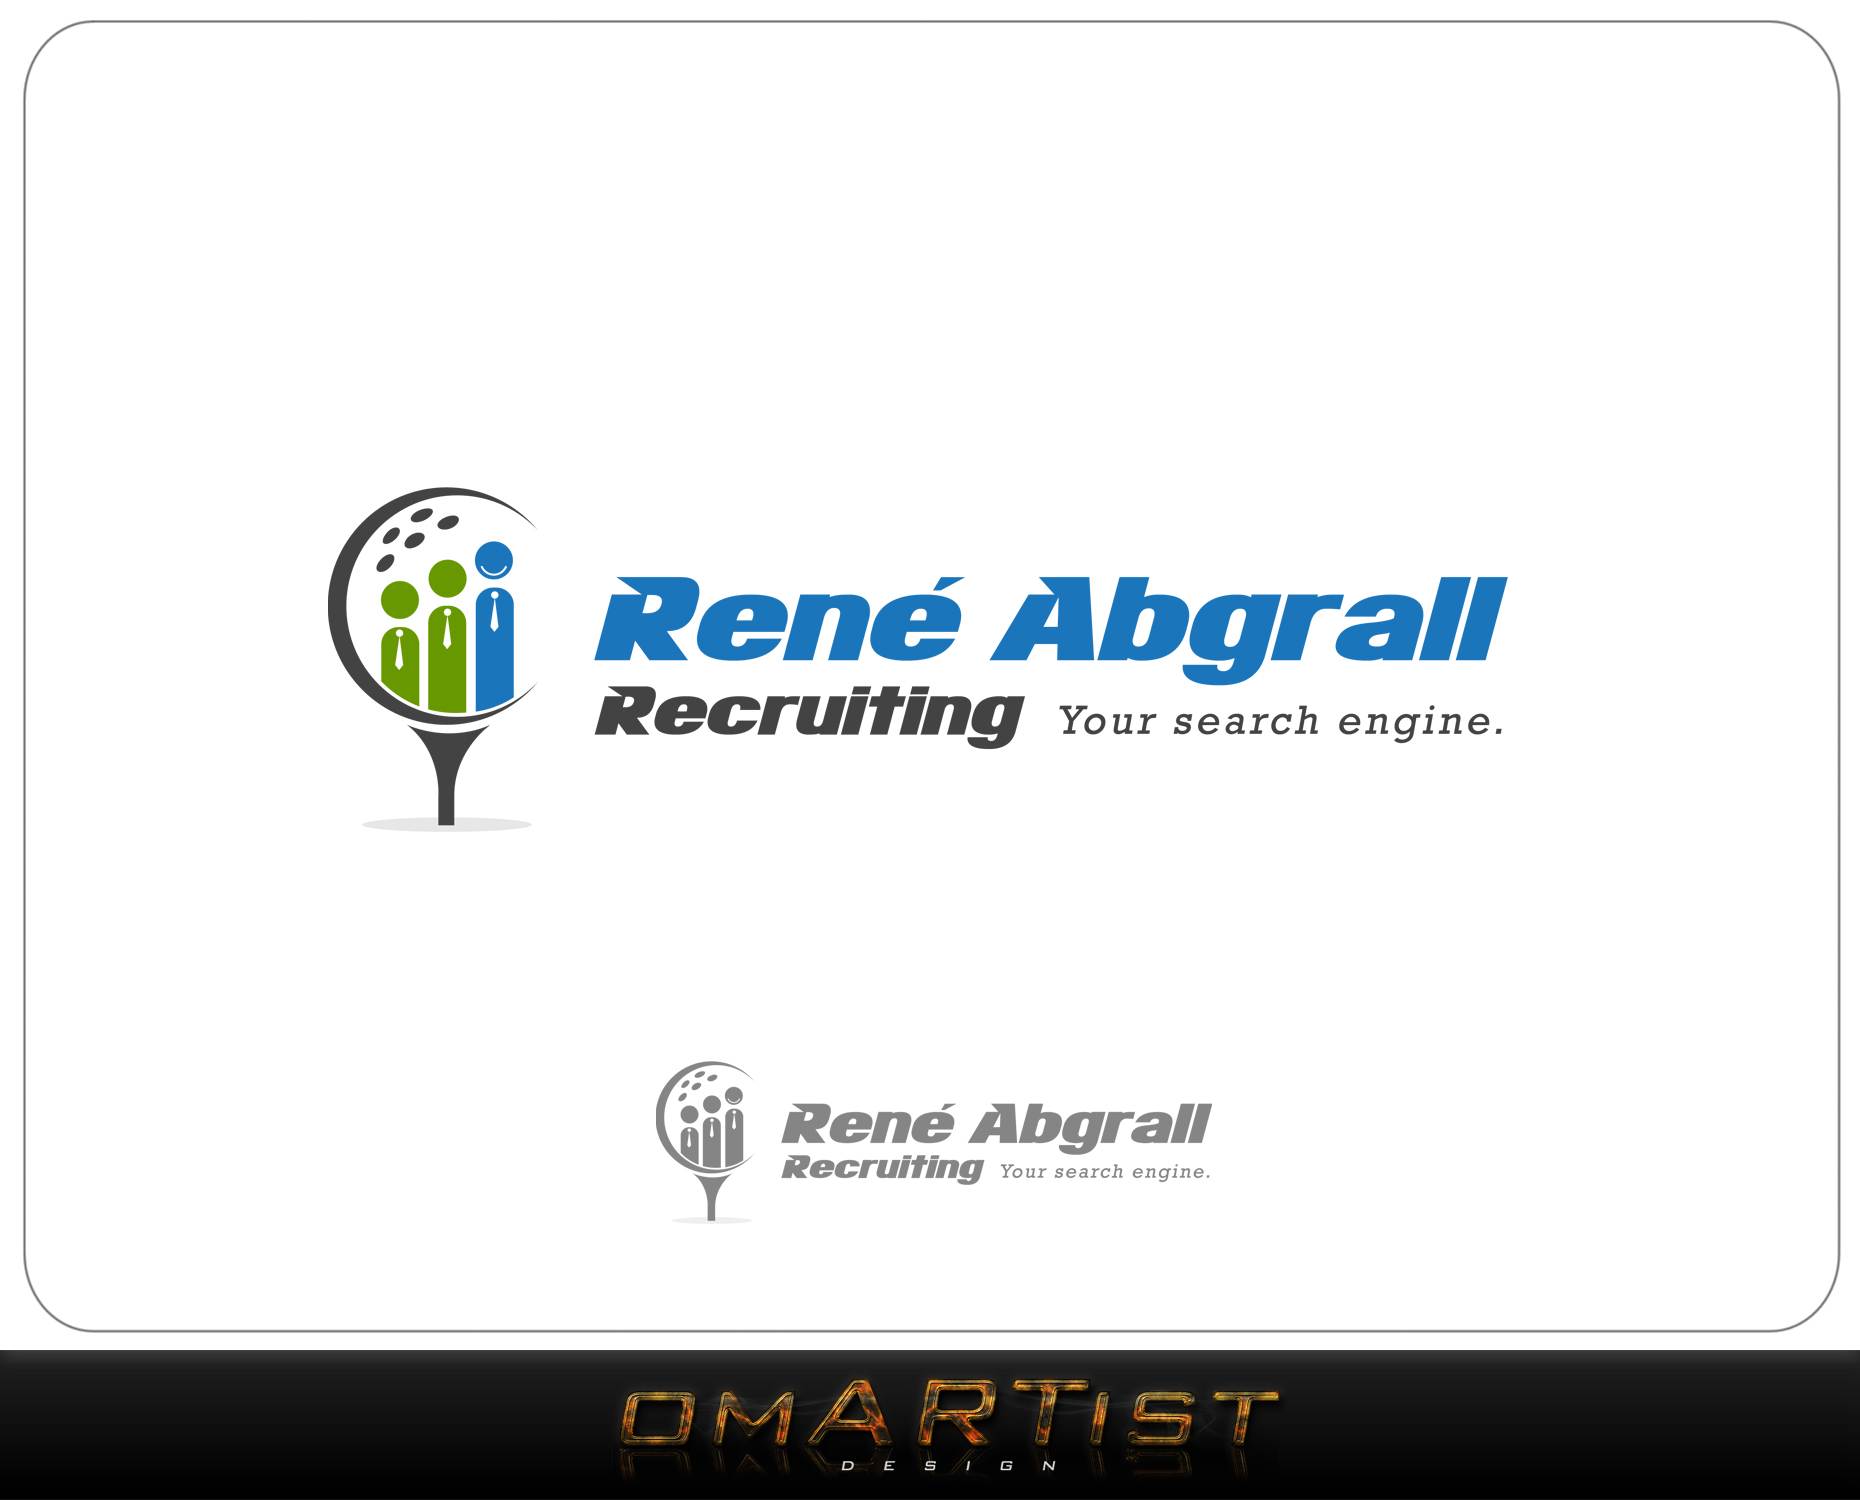 Logo Design by omARTist - Entry No. 41 in the Logo Design Contest Artistic Logo Design for René Abgrall Recruiting.